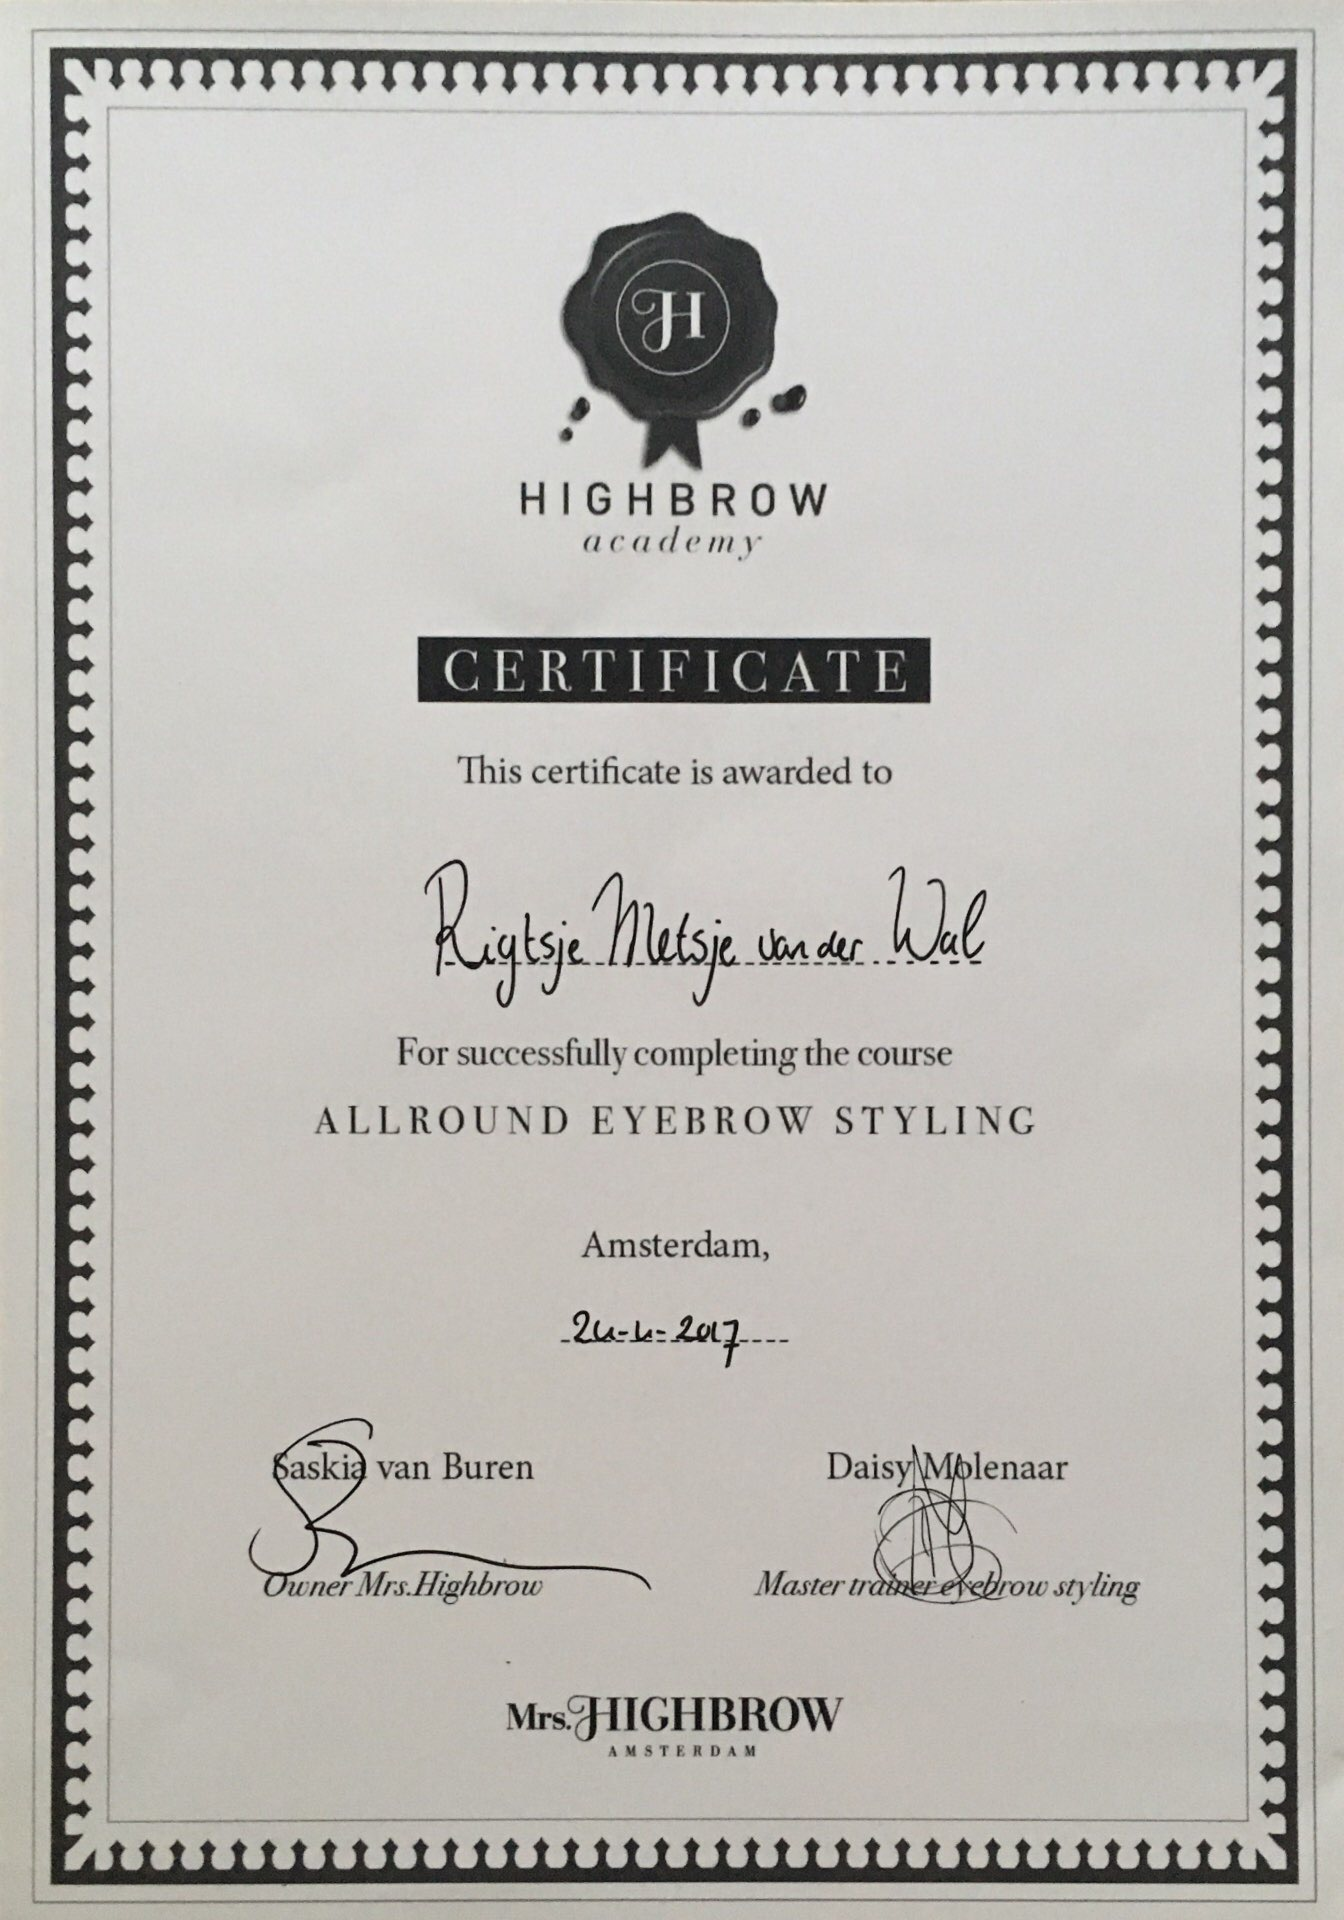 Mrs. Highbrow - Allround eyebrow styling